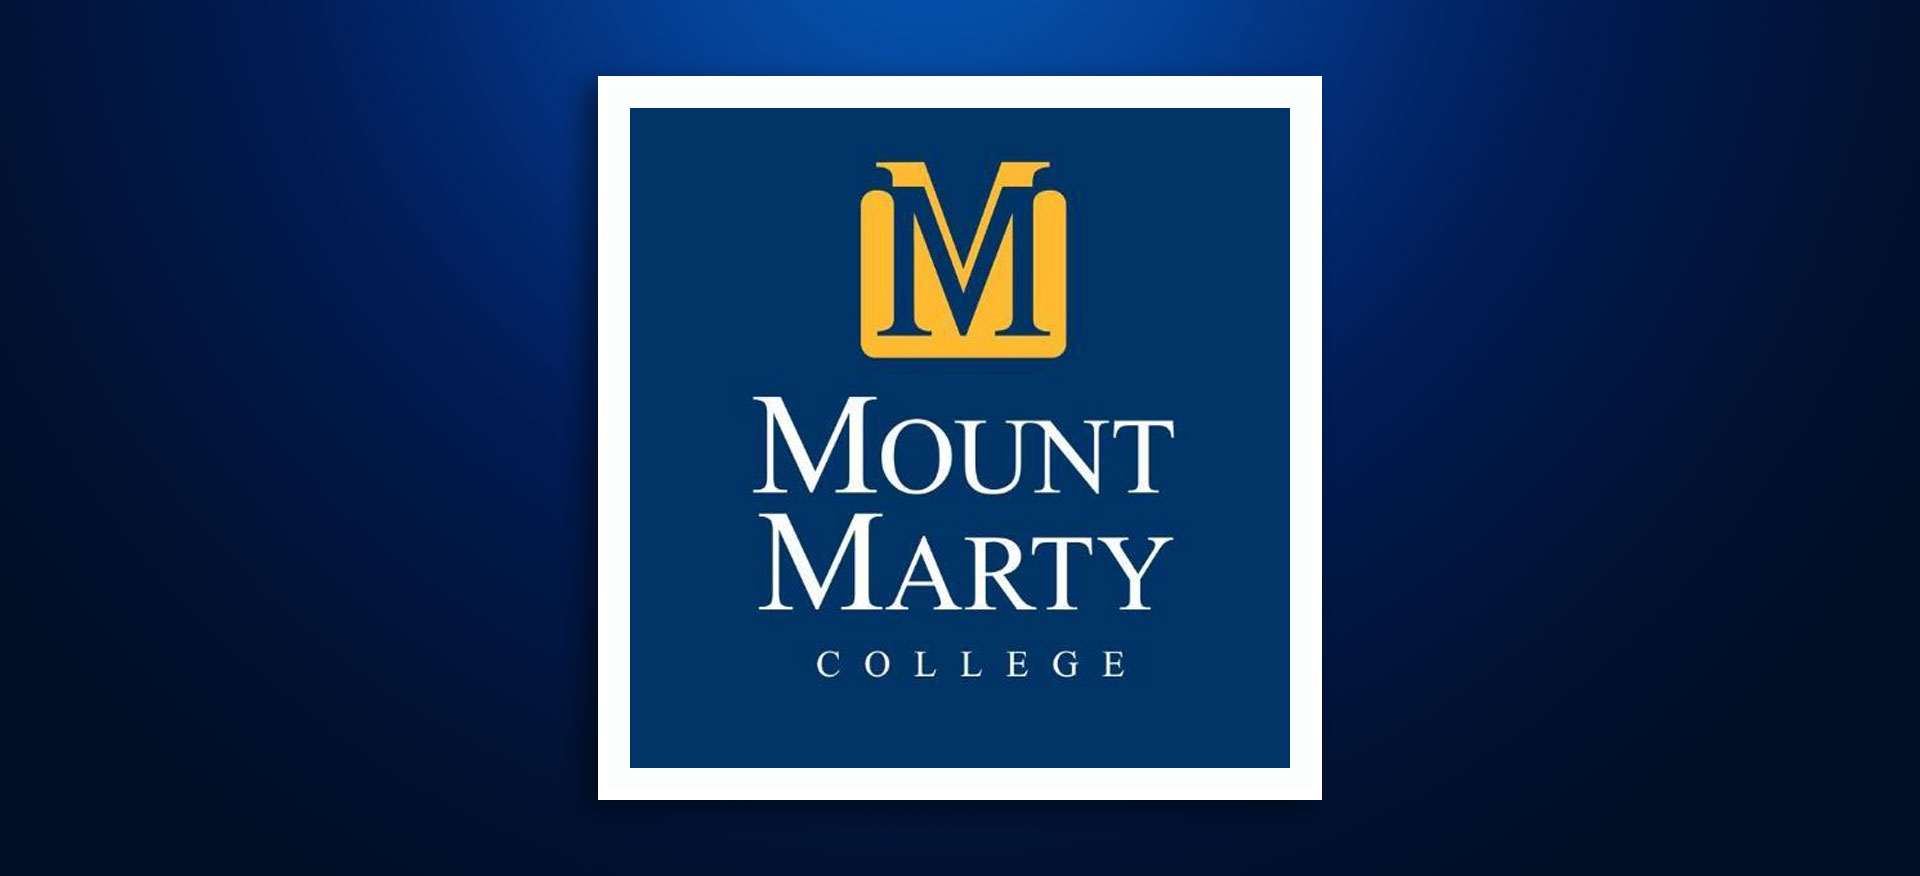 Marty college